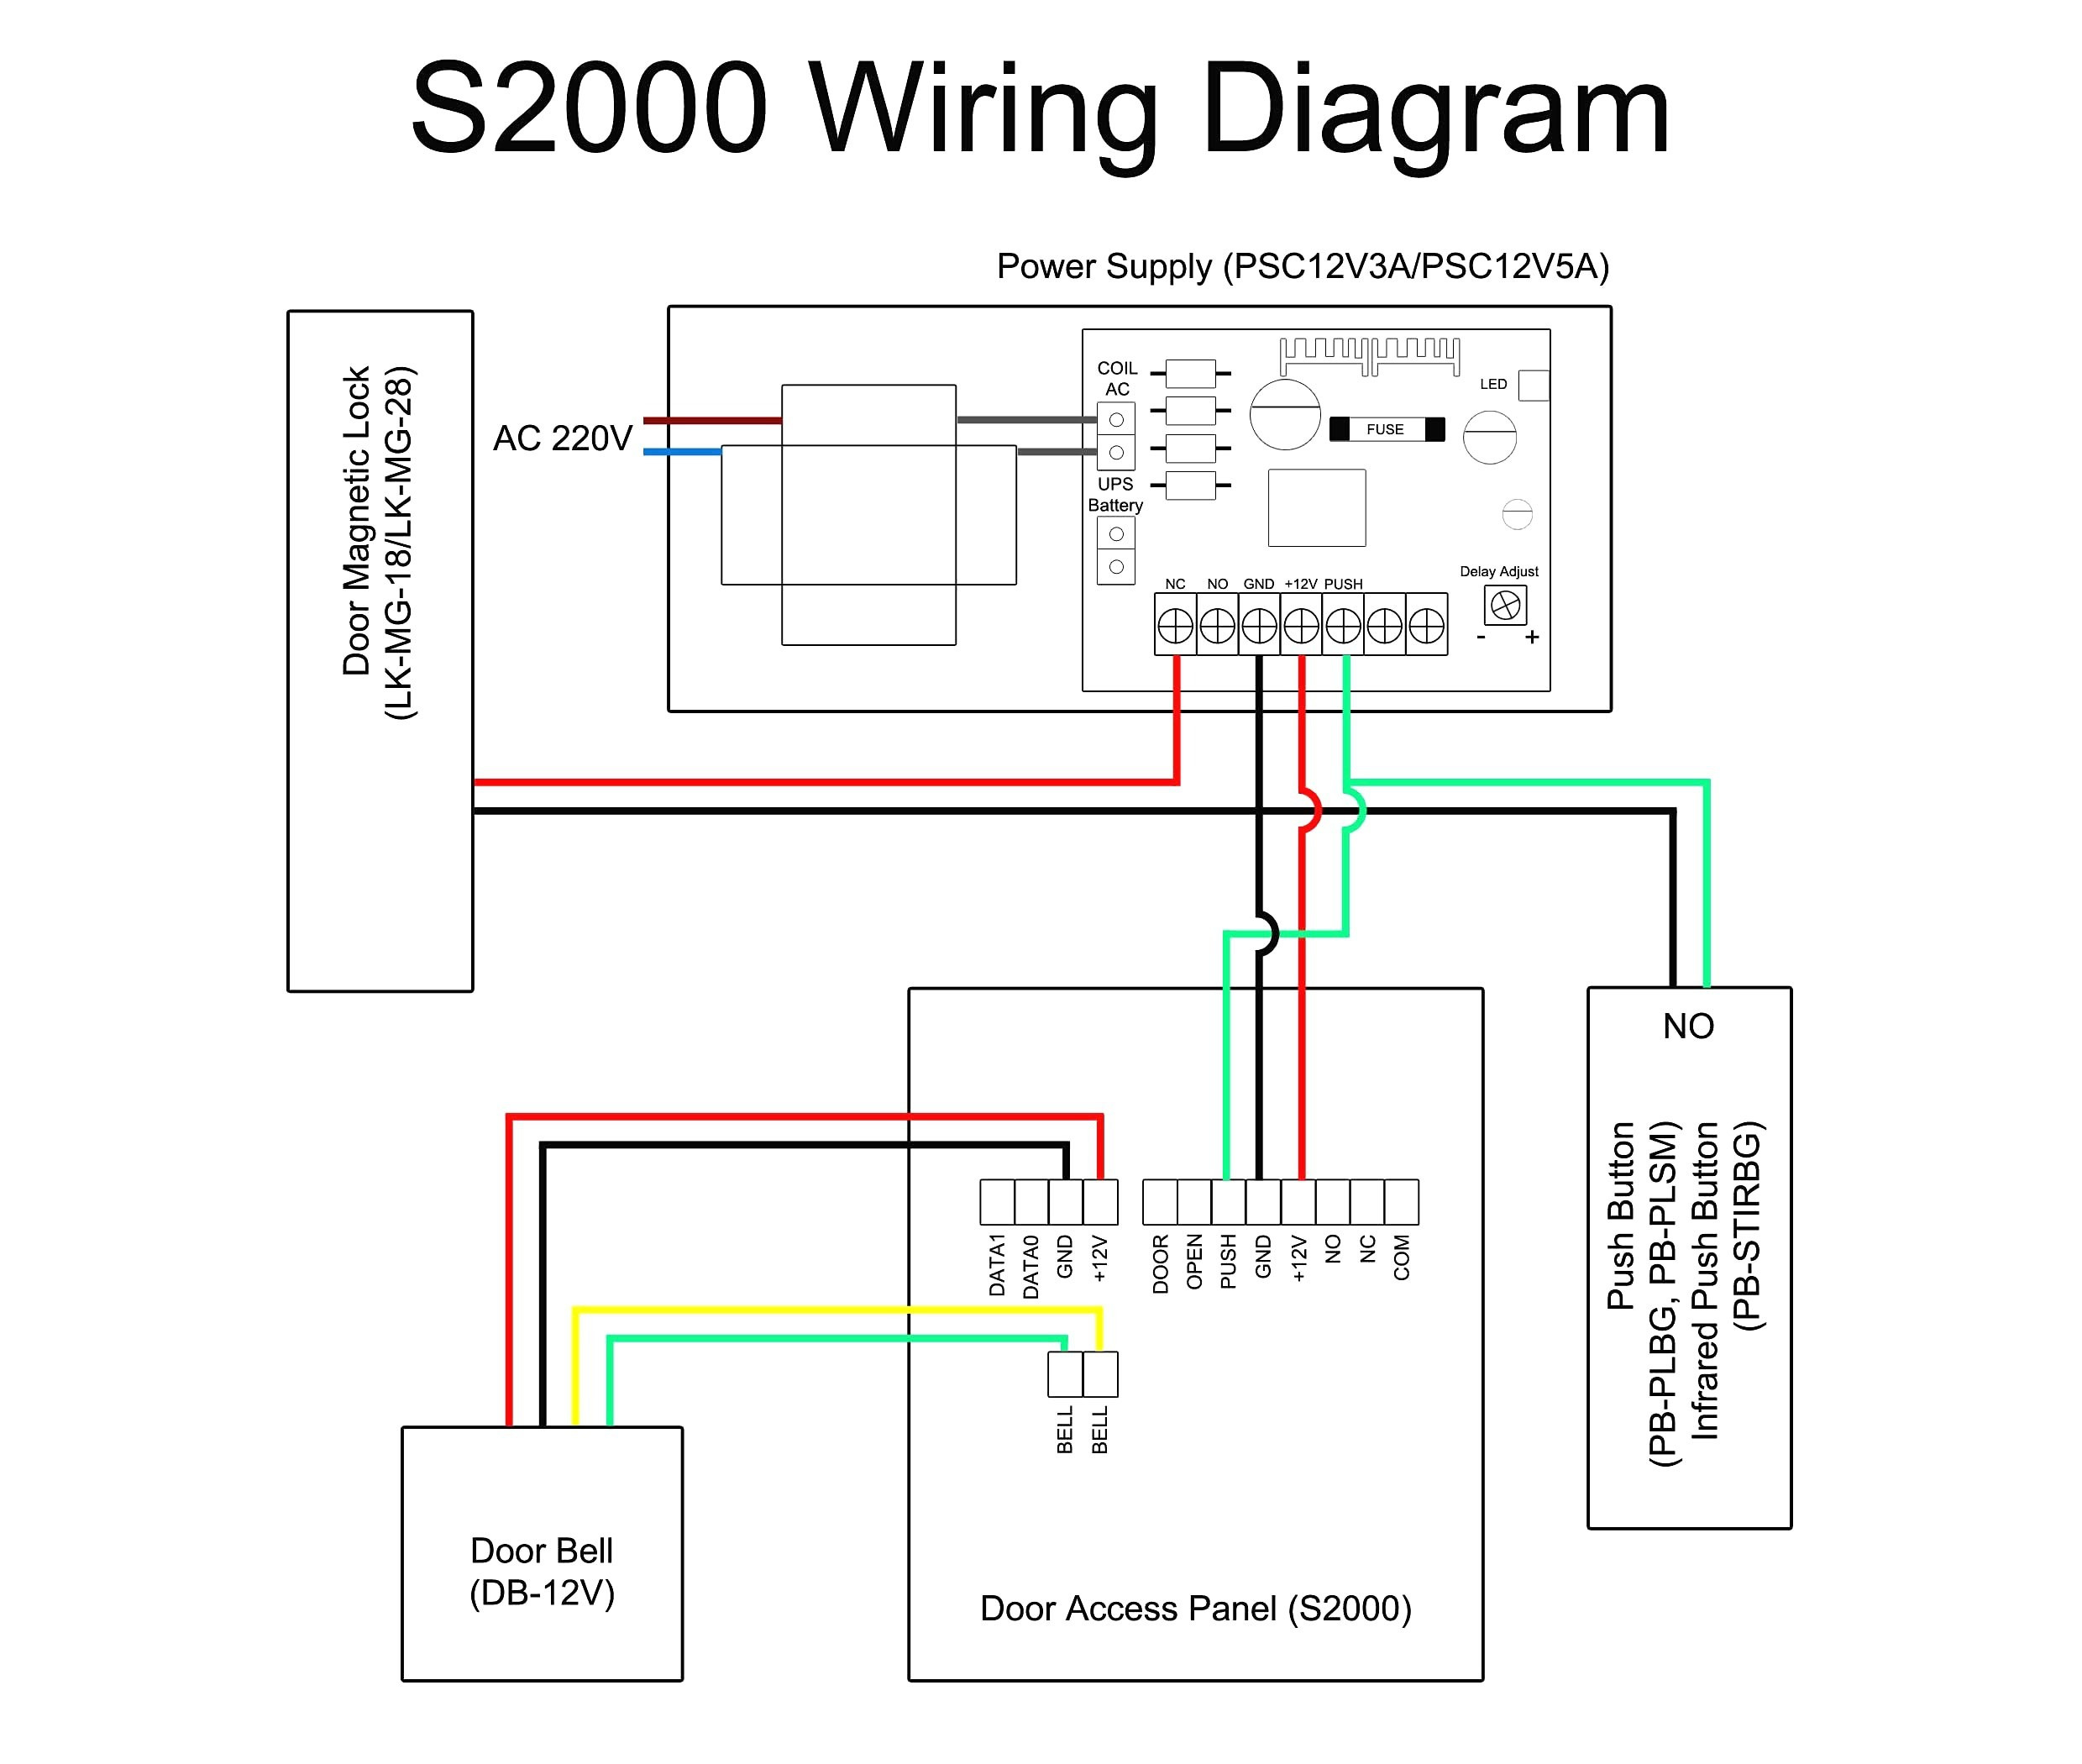 bunker hill security camera wiring diagram Download-Wiring Diagram Burglar Alarm Systems Inspirationa Bunker Hill Security Camera Wiring Diagram New Ccd Camera Circuit 3-k